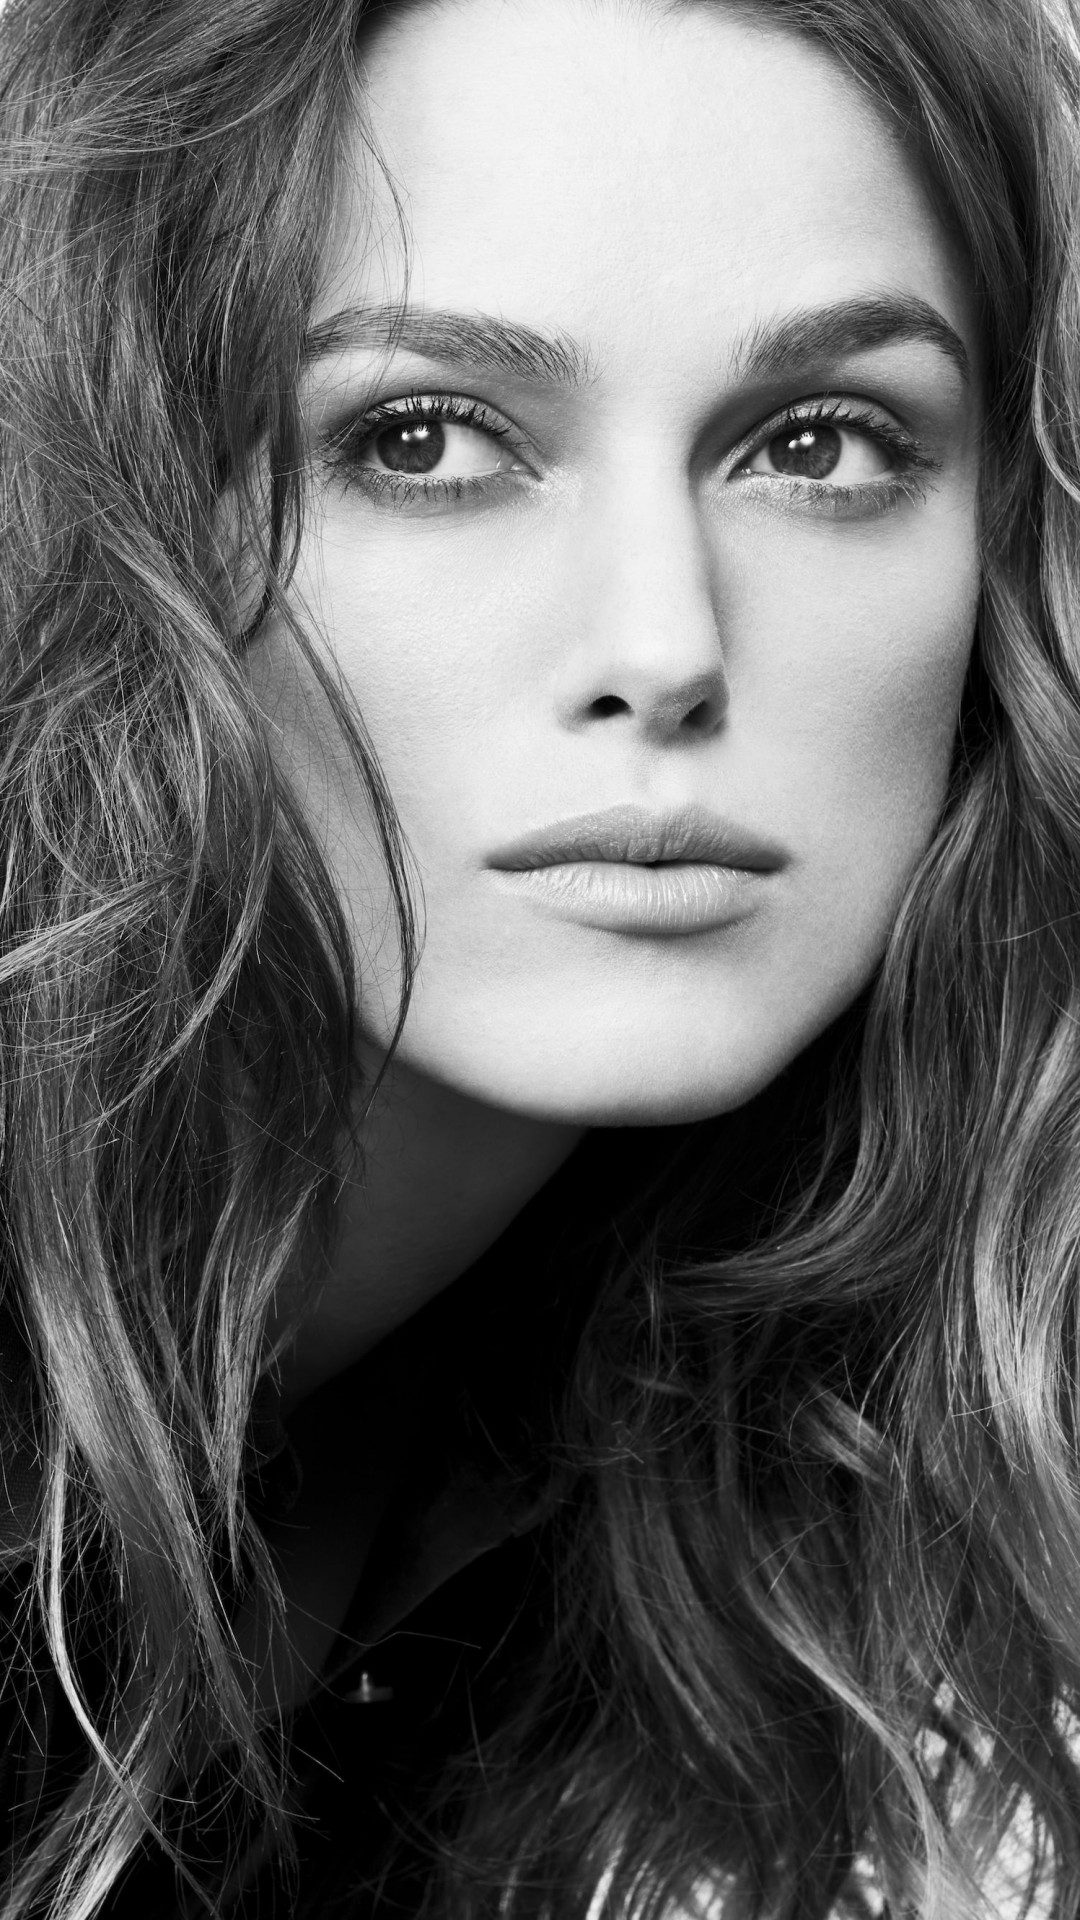 Keira Knightley in Black & White Wallpaper for Google Nexus 5X